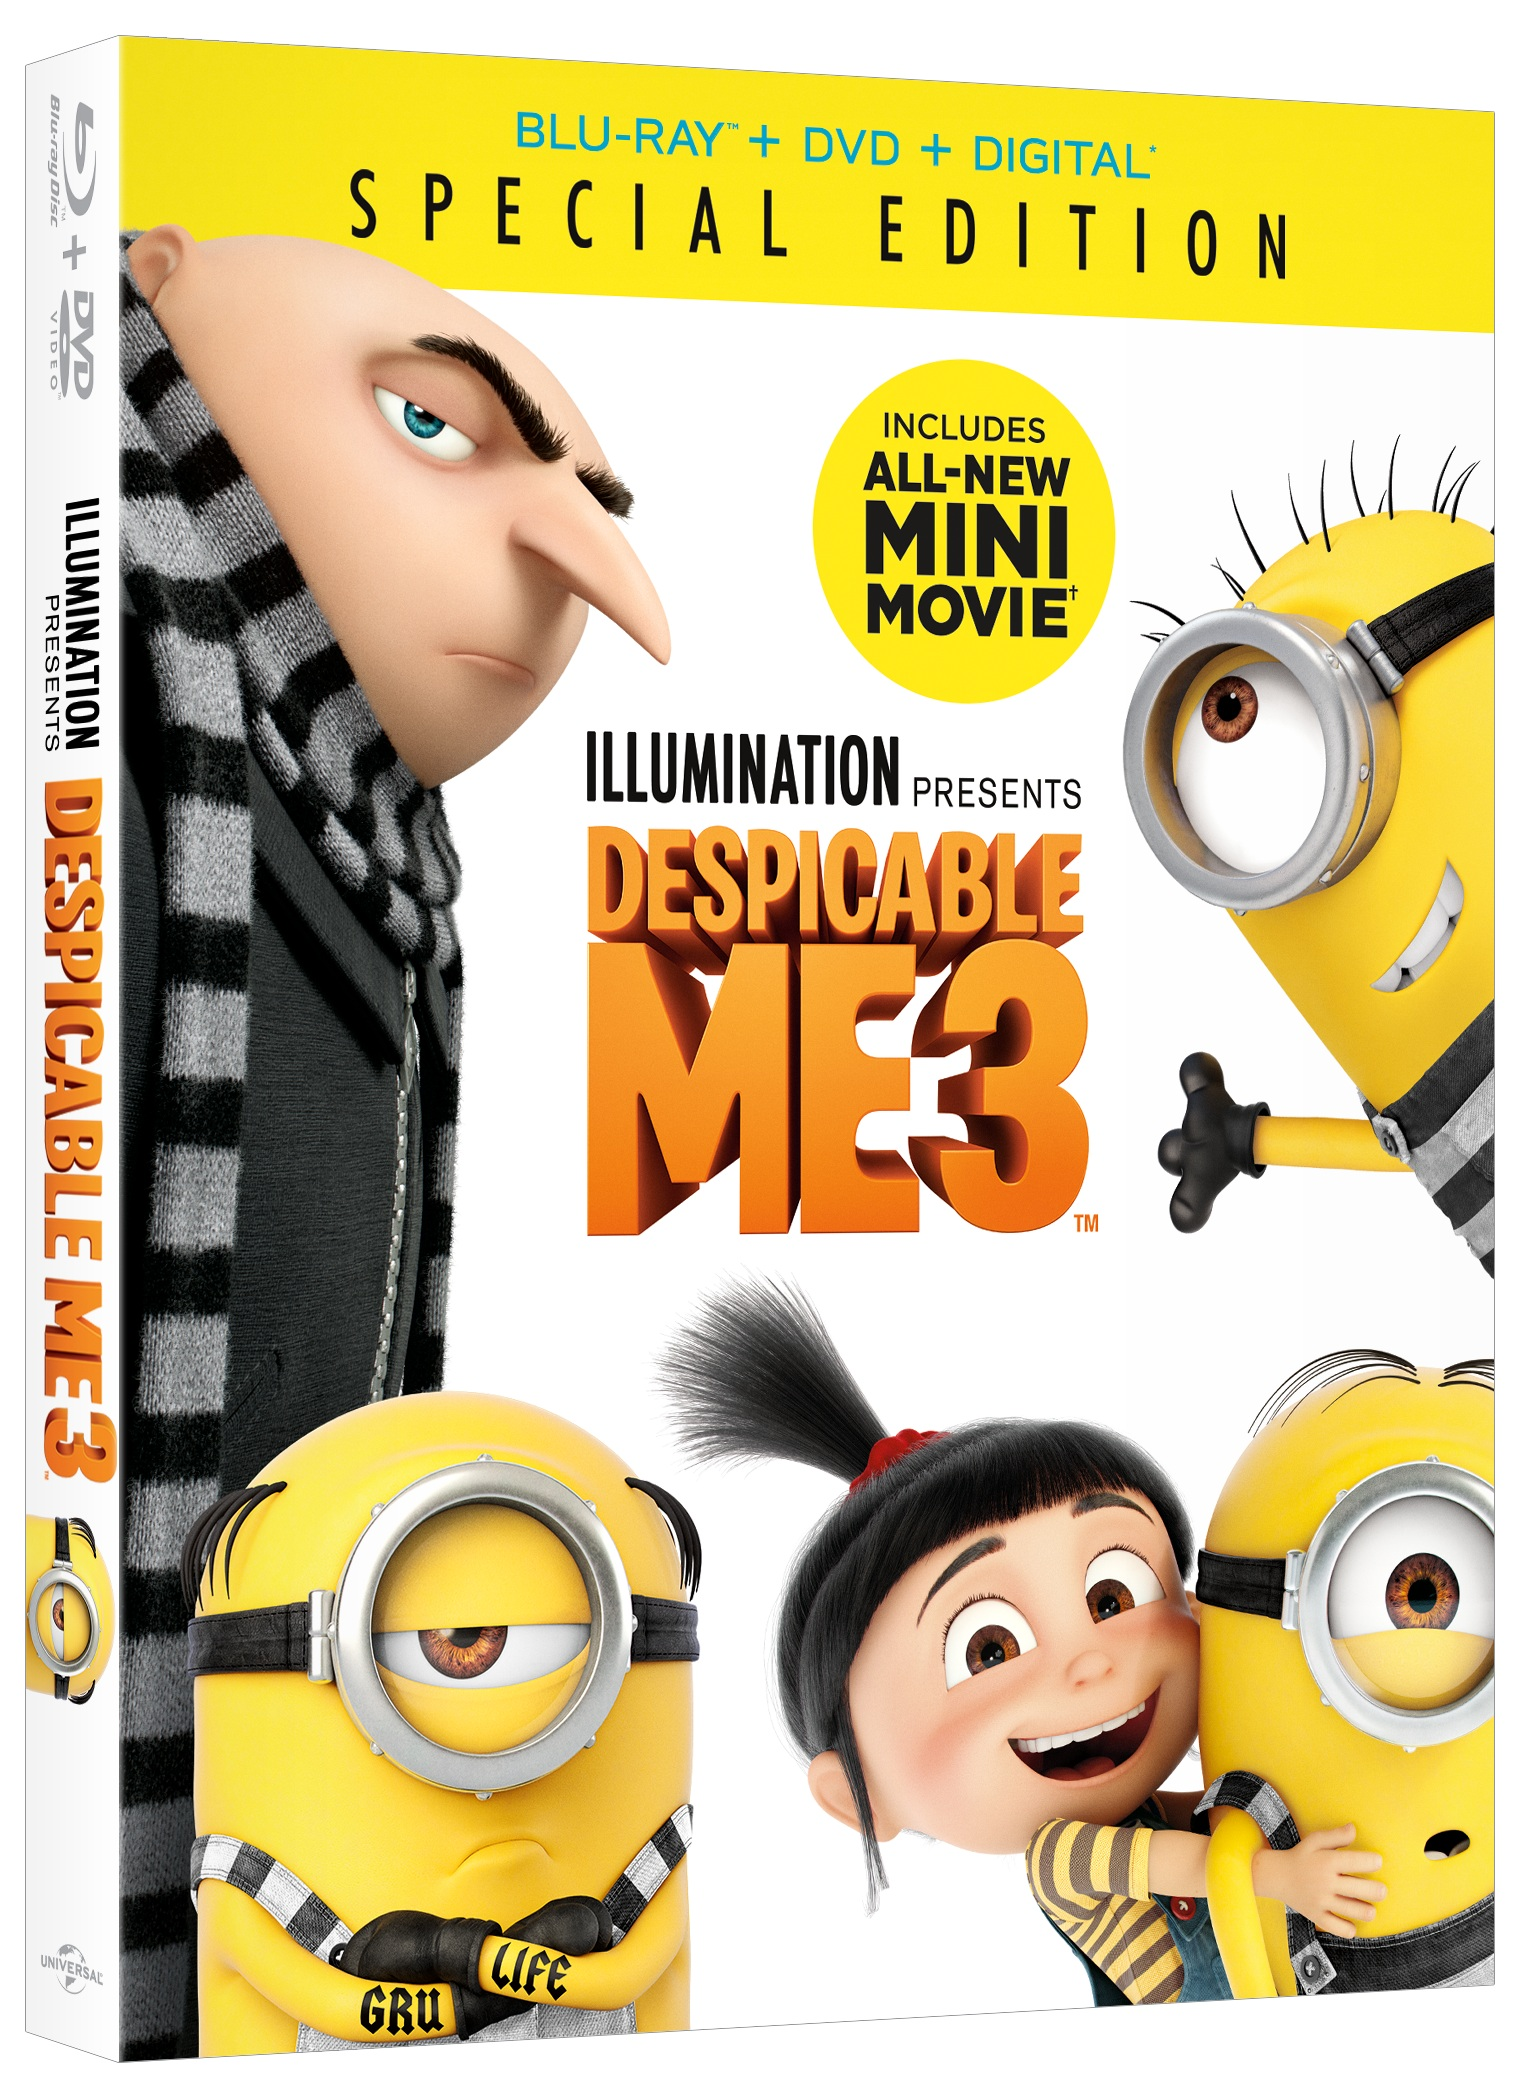 2017 Despicable Me 3 Special Edition Blu-Ray